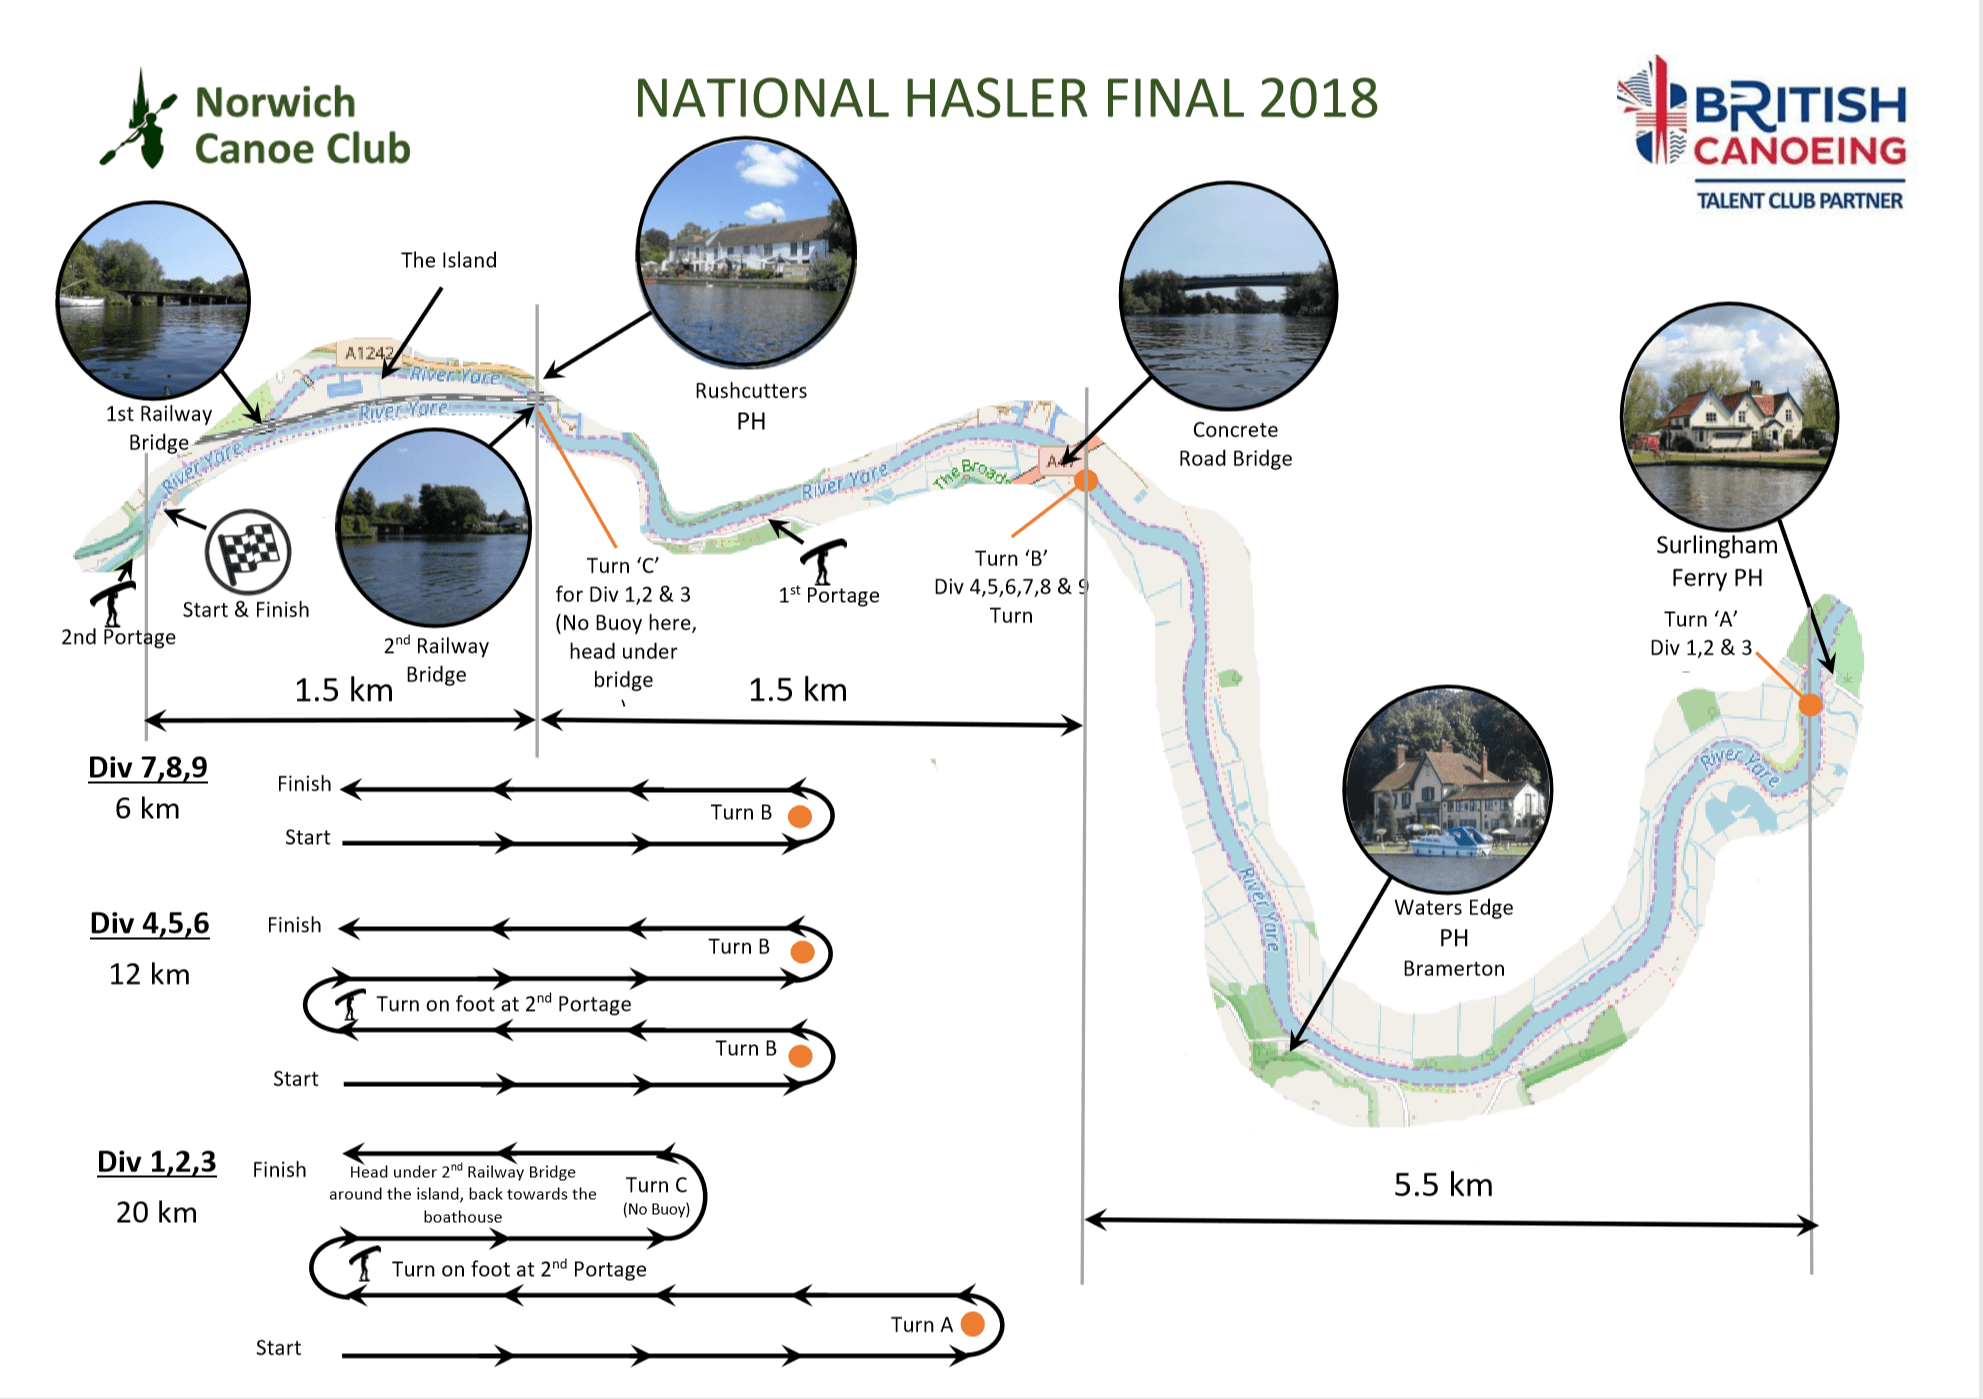 https://norwichcanoeclub.co.uk/wp-content/uploads/2018/09/Hasler-Final-Route-Map.png